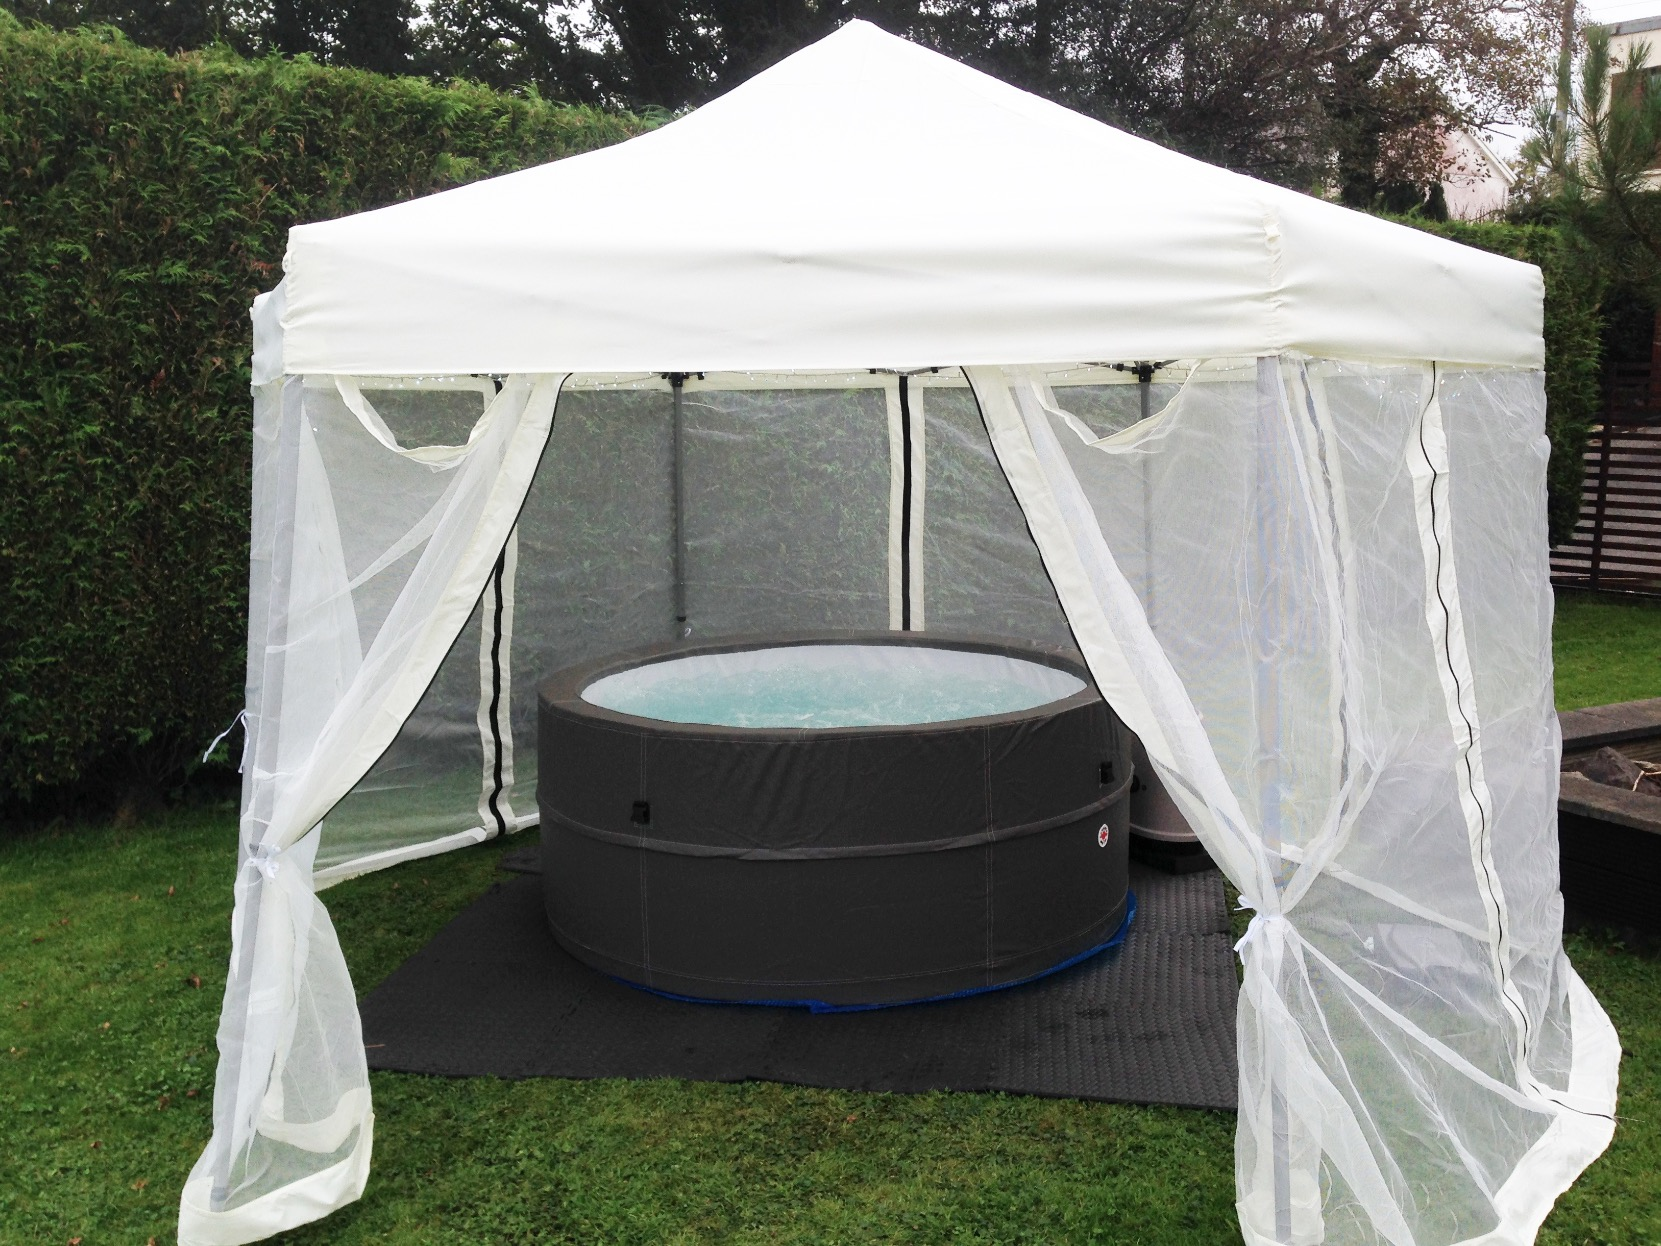 enquire pools to gazebos here about tubs gazebo home chalets counties click false hot tub